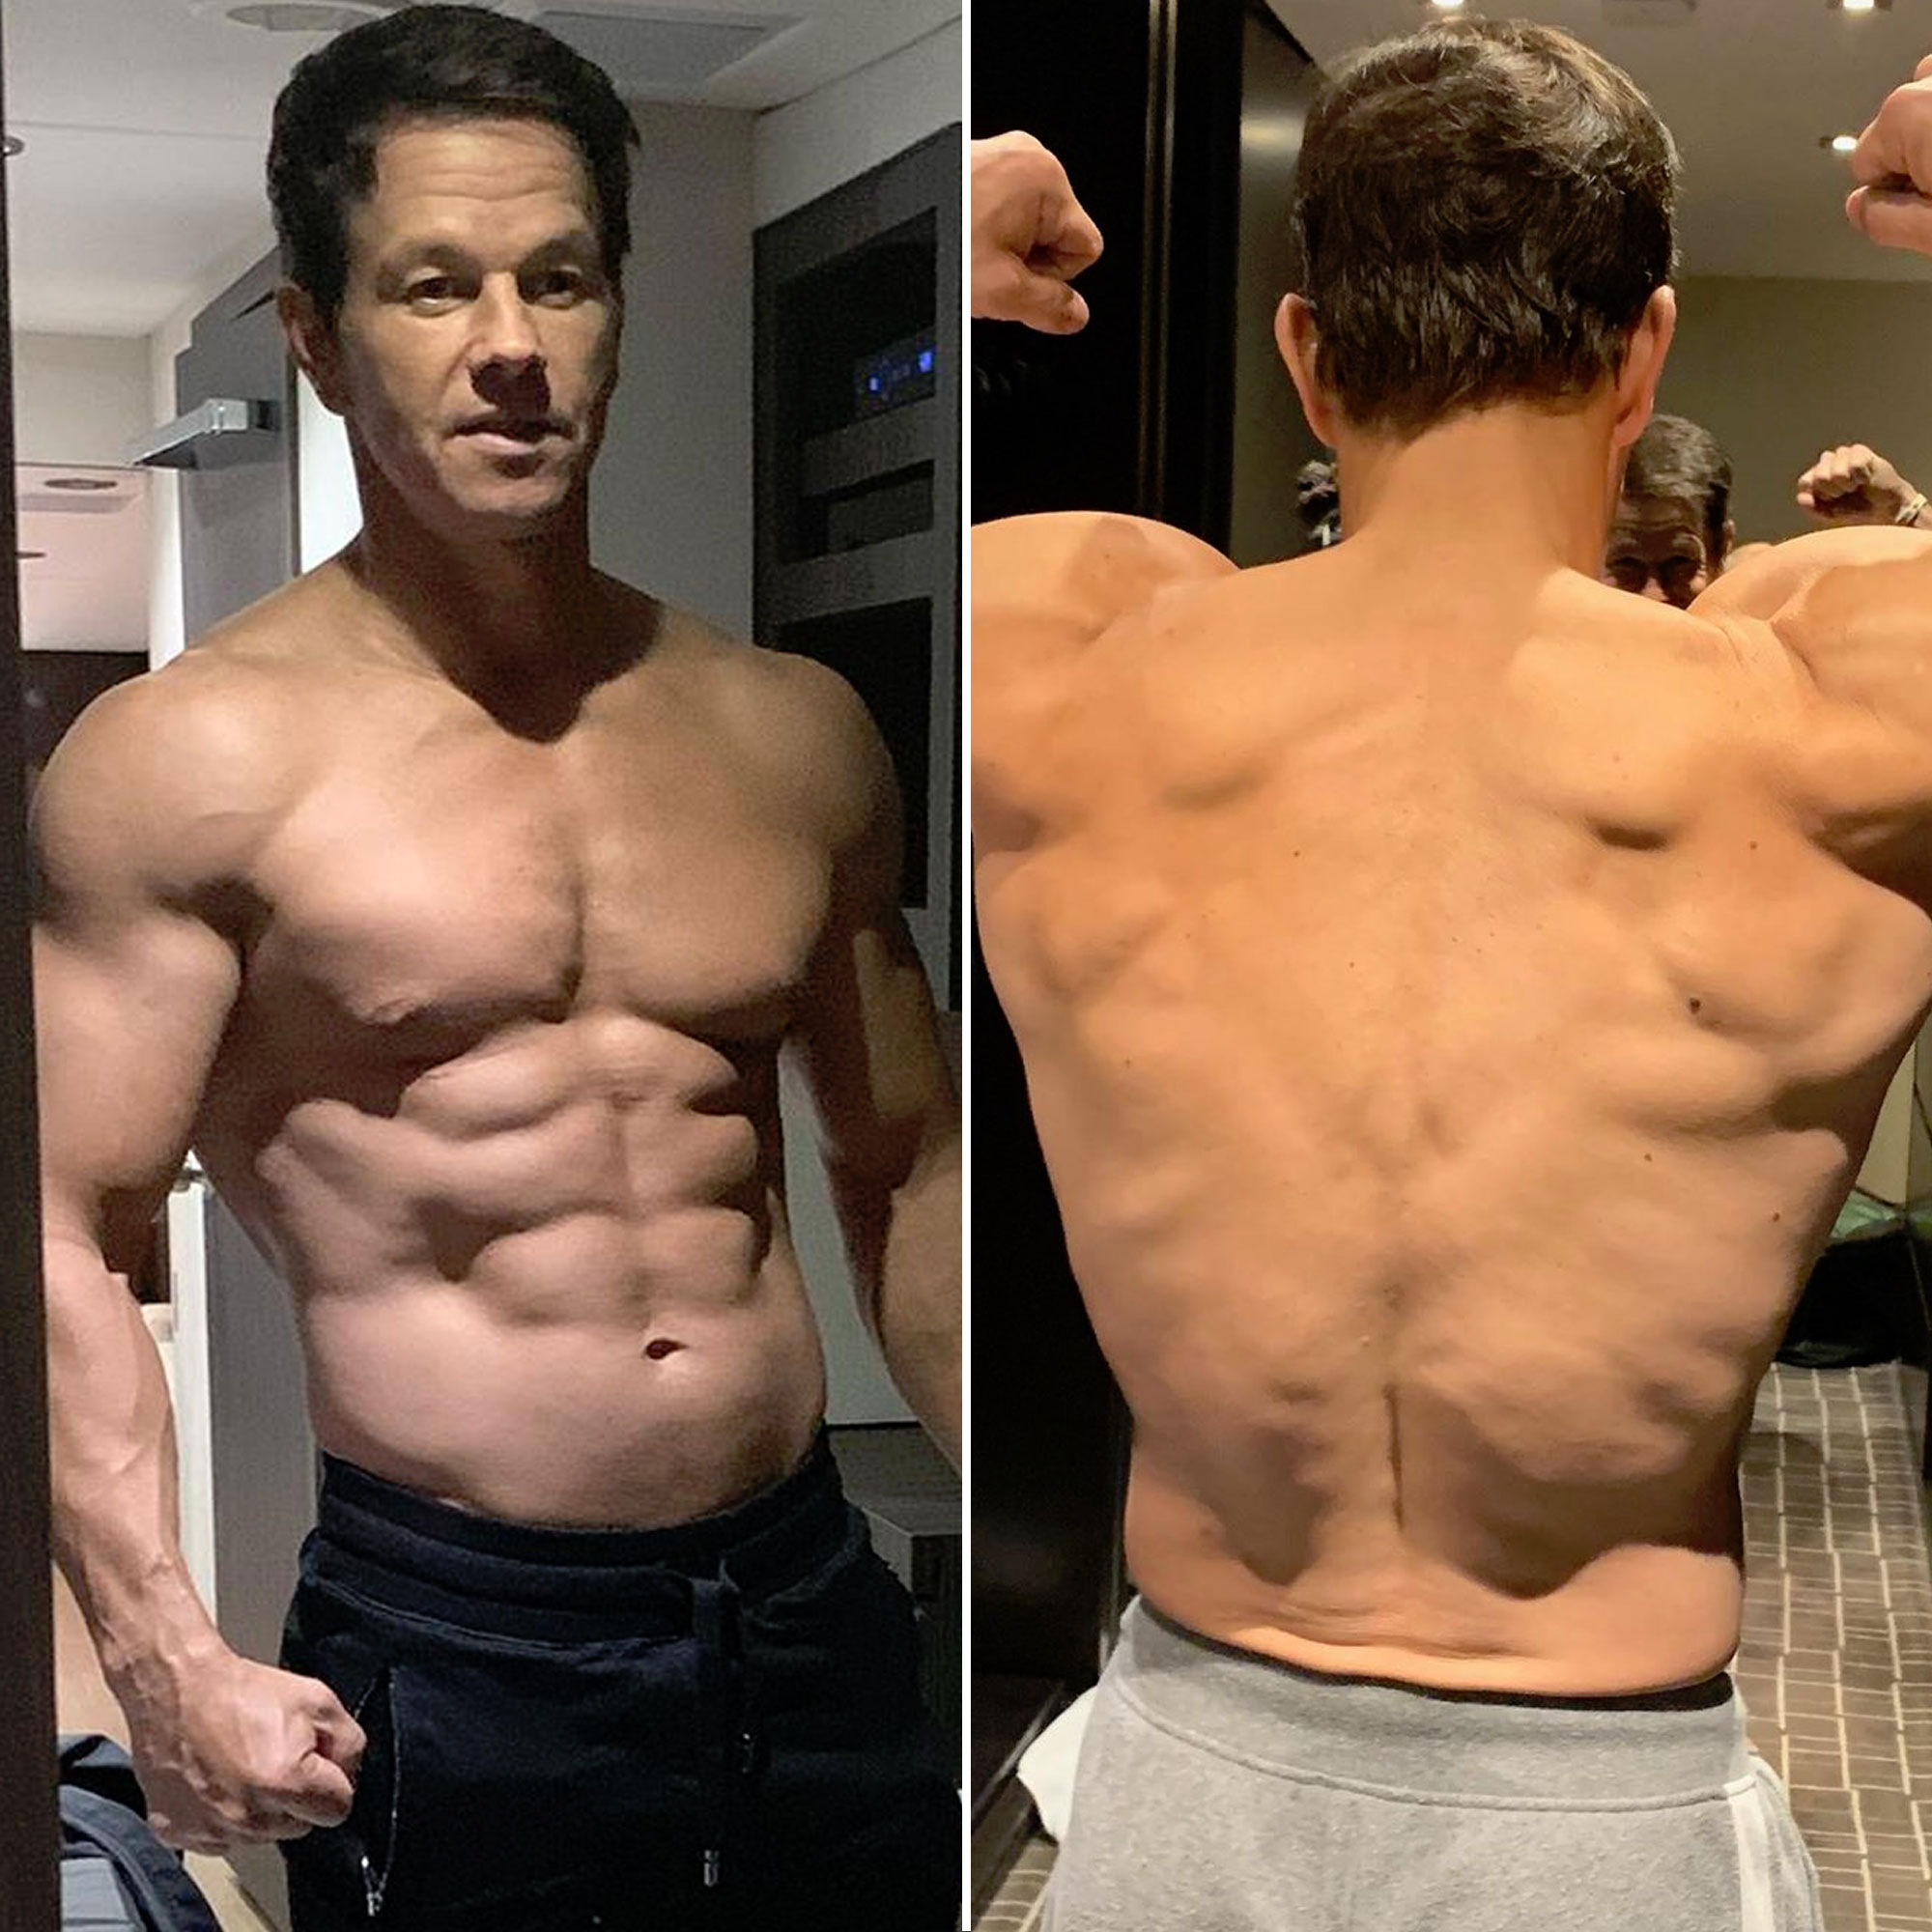 Mark Wahlberg Opens Up About Aging My Biological Clock Is Ticking